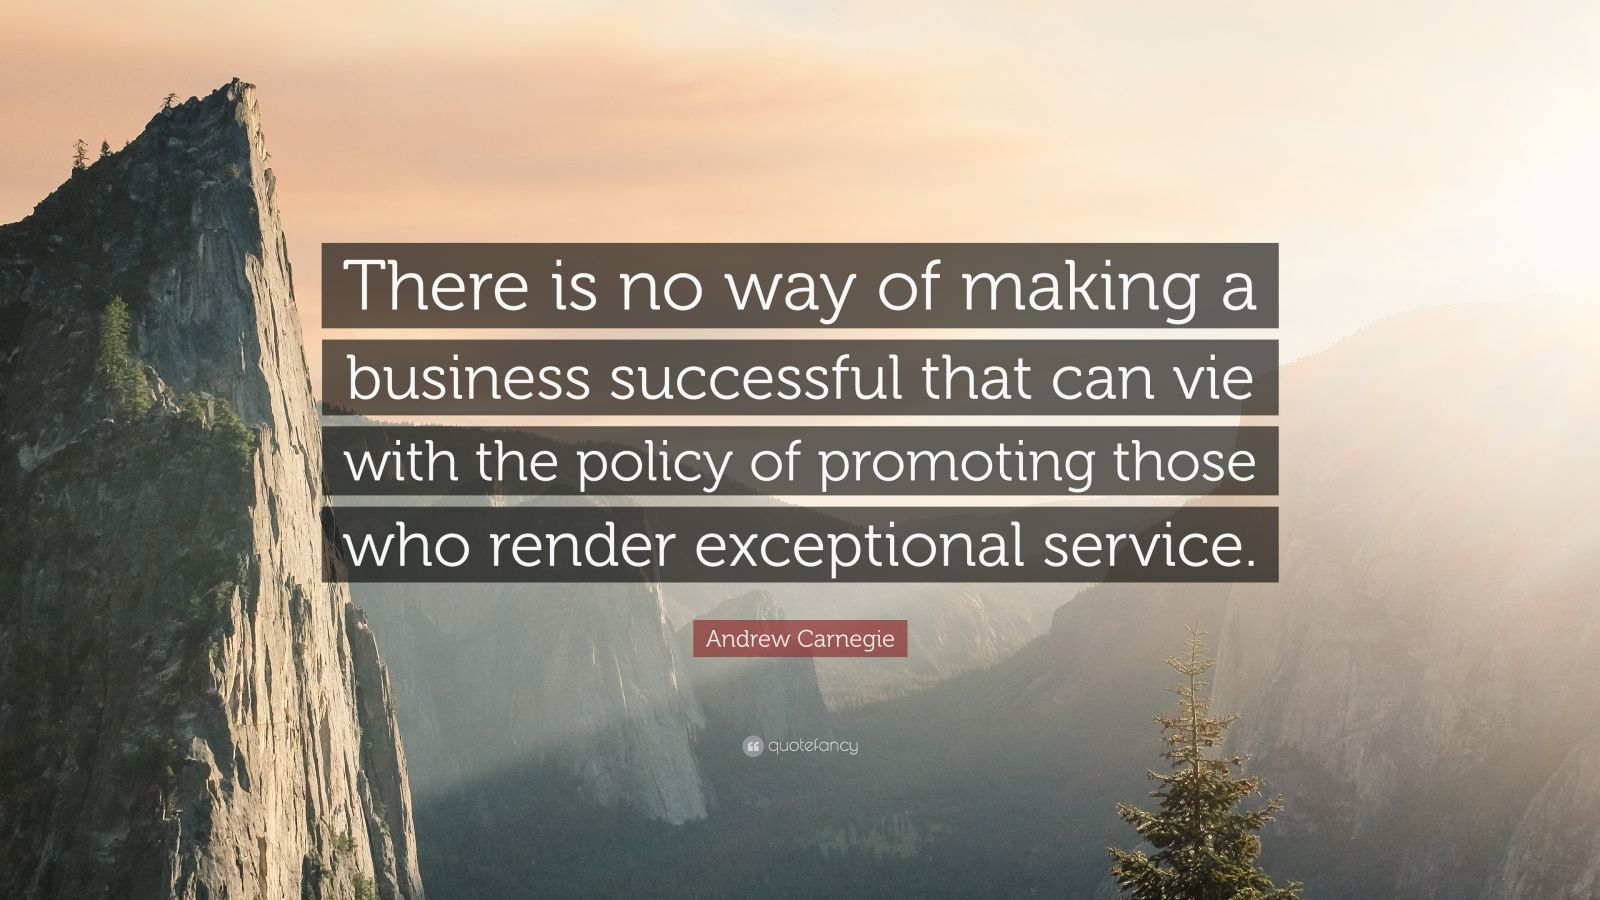 """Andrew Carnegie Quote: """"There is no way of making a business successful that can vie with the policy of promoting those who render exceptional service."""""""